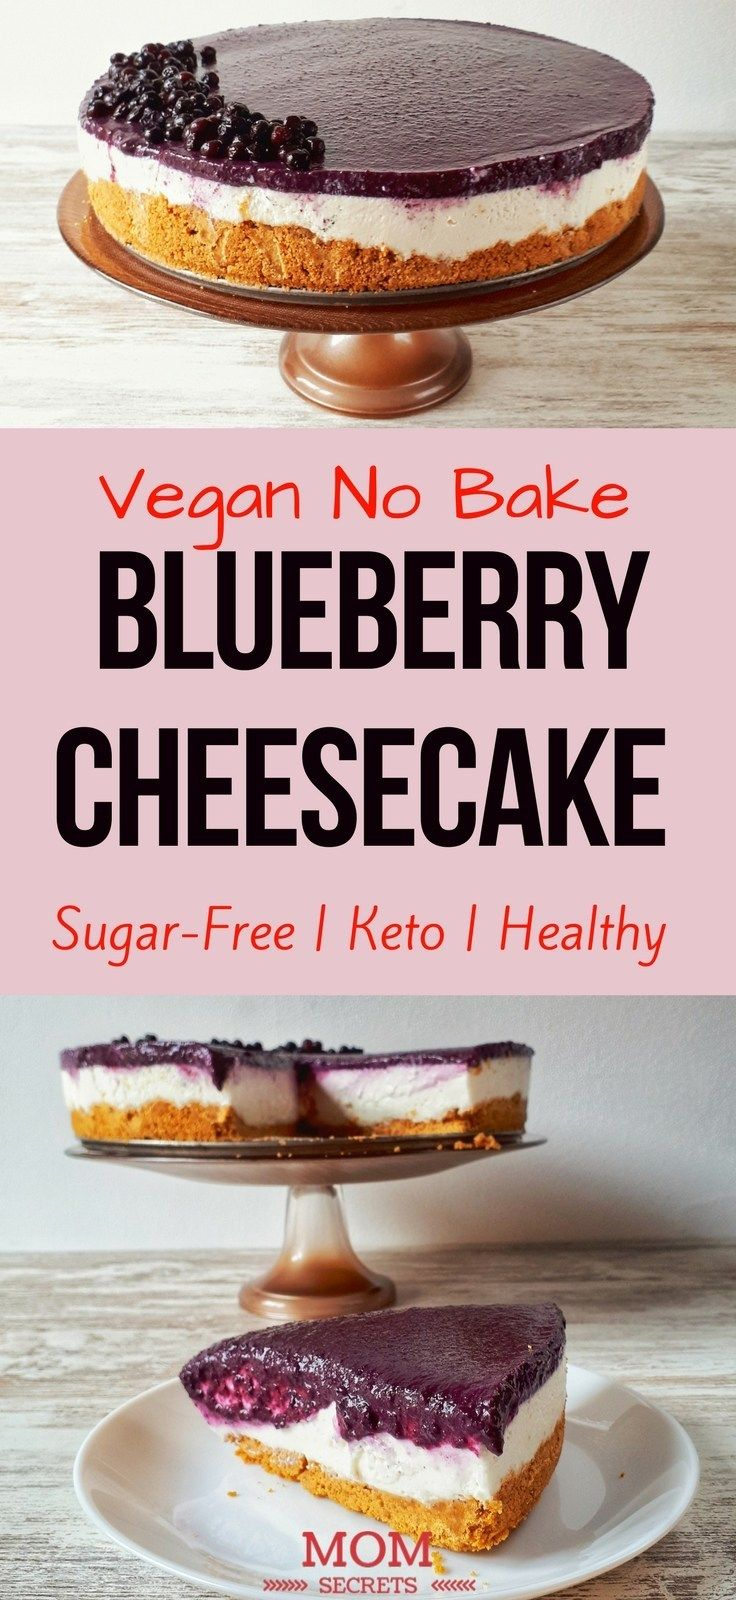 9 Easy Keto Dessert Recipes – Keep Ketogenic Diet with No Guilt!